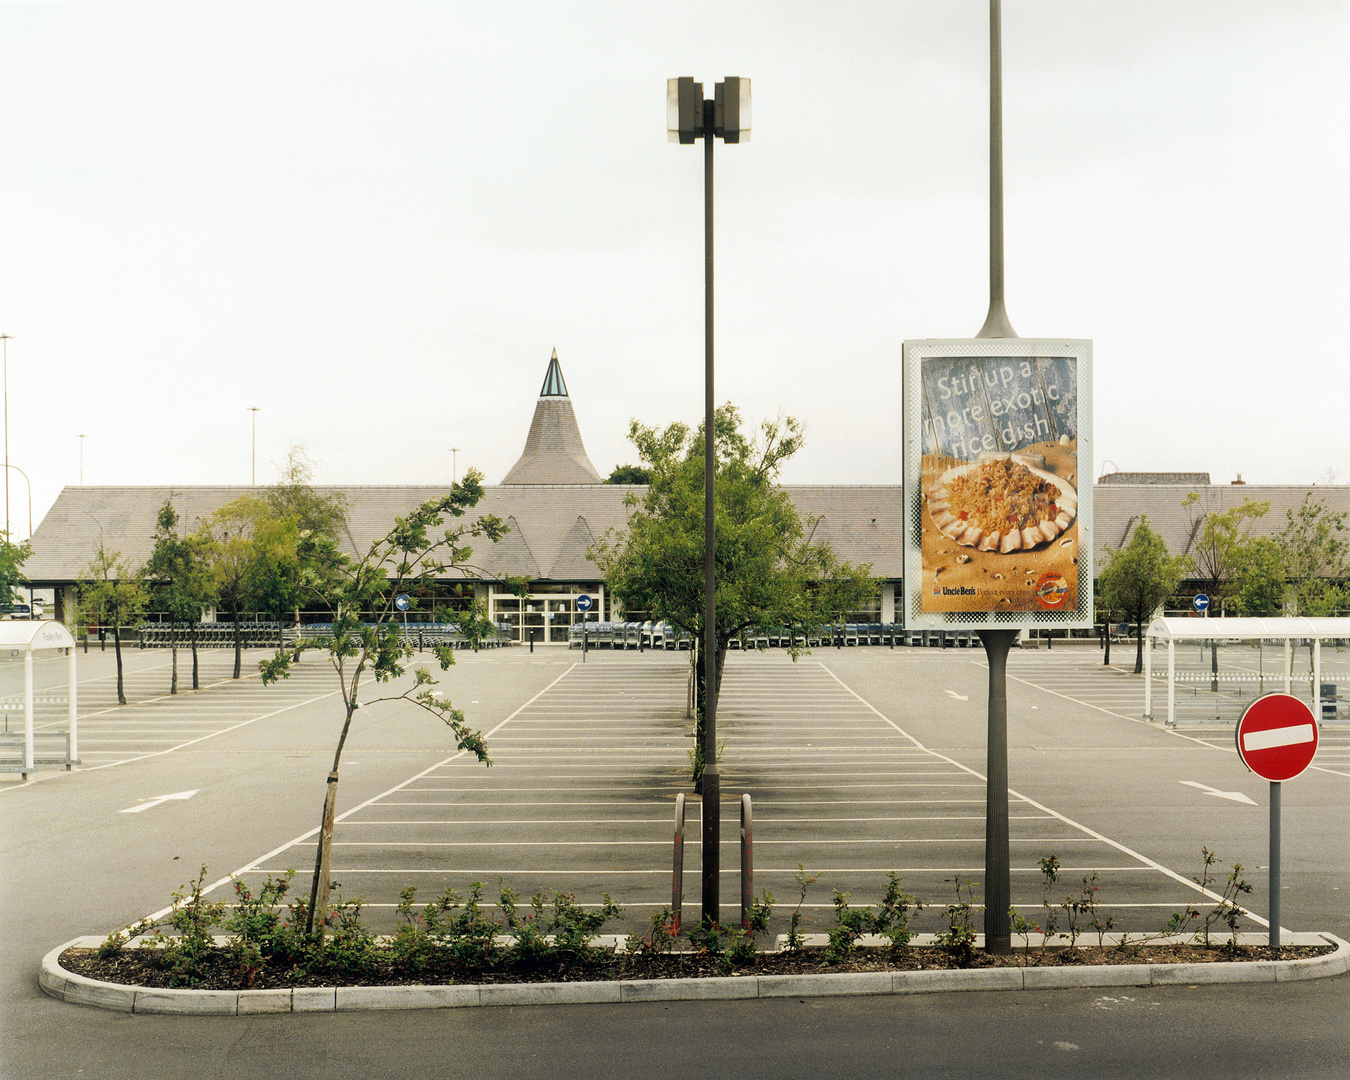 Tesco supermarket, South London